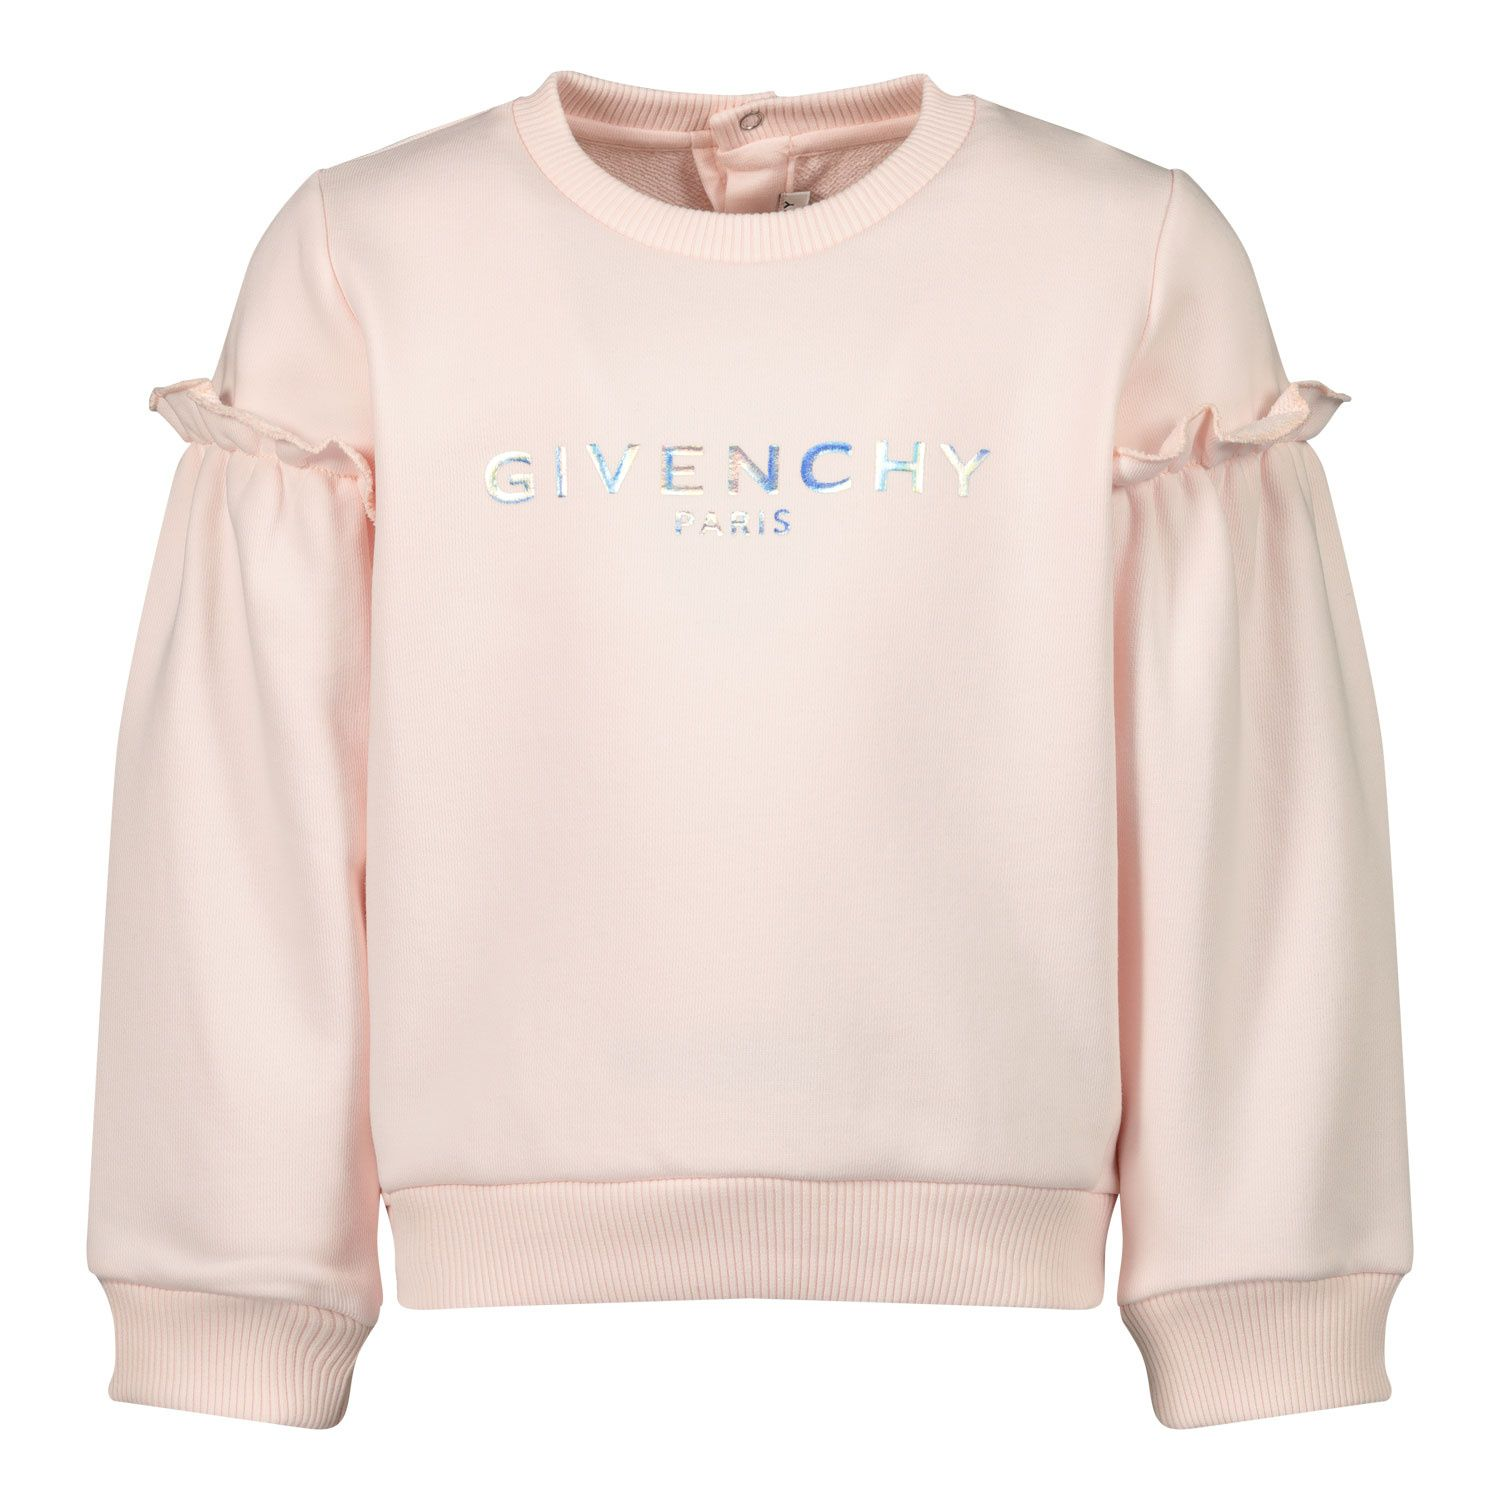 Afbeelding van Givenchy H05167 baby trui licht roze